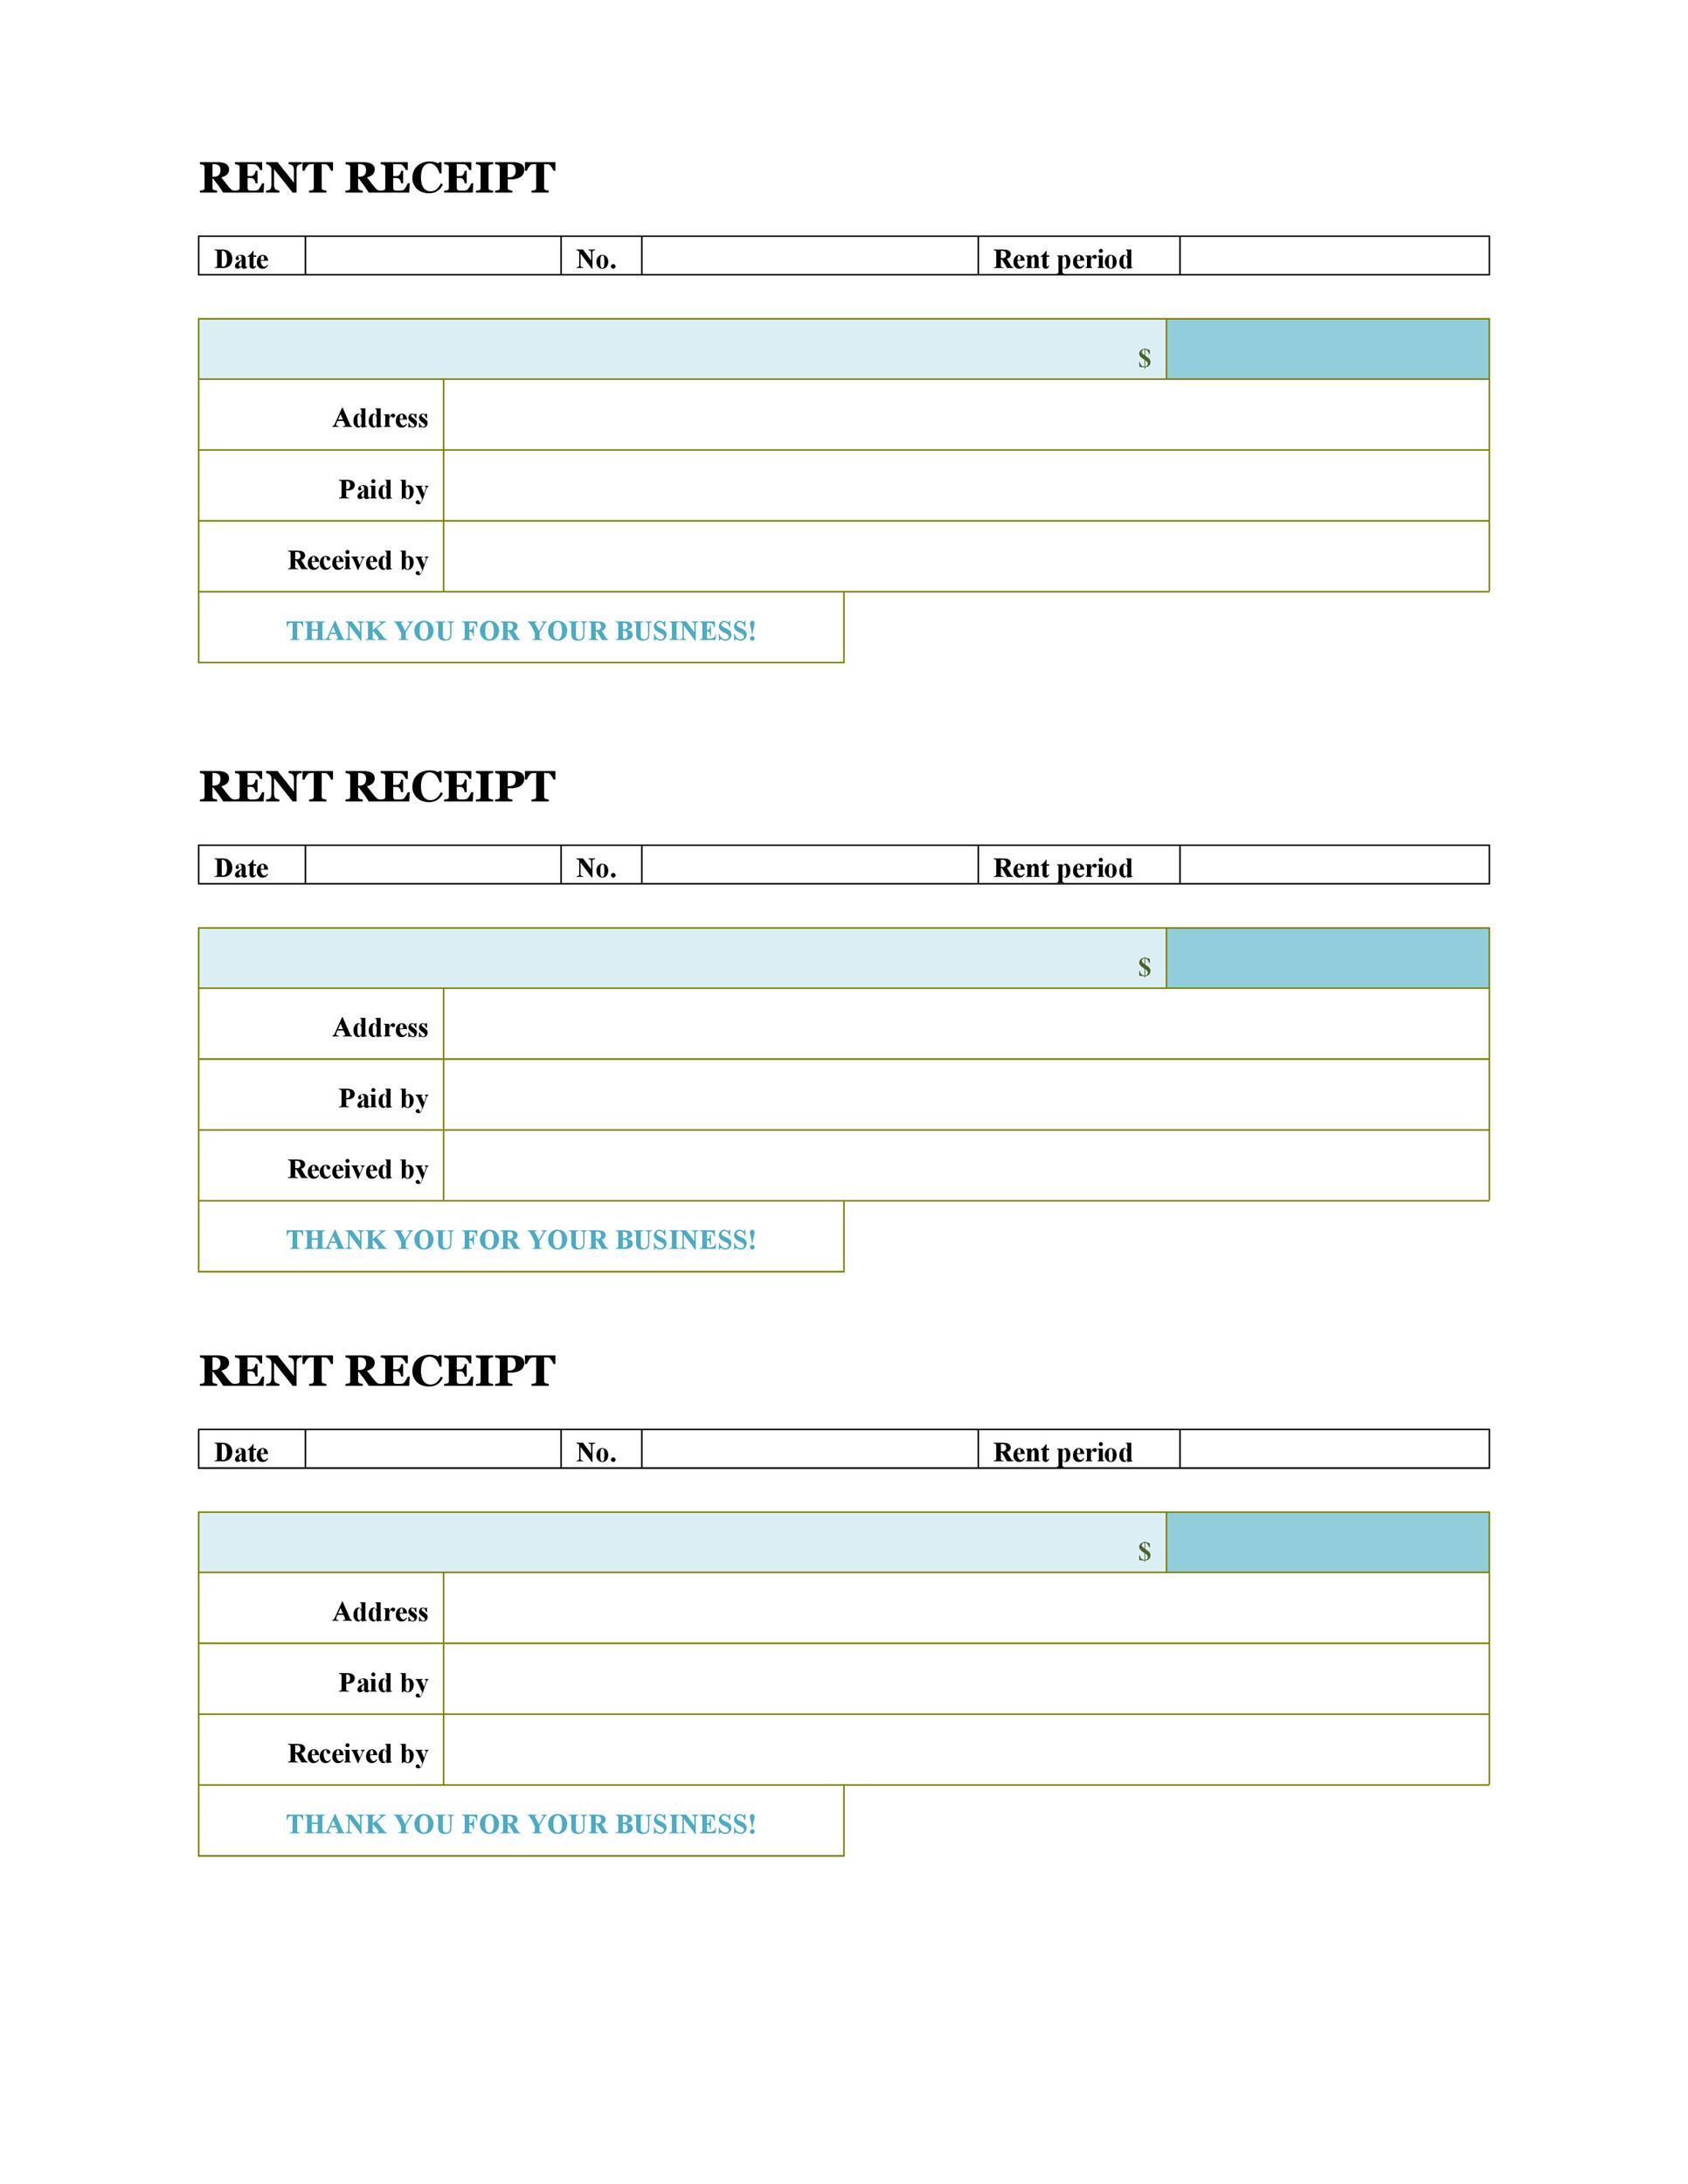 50 Free Receipt Templates Cash Sales Donation Taxi – Receipt Sample in Word